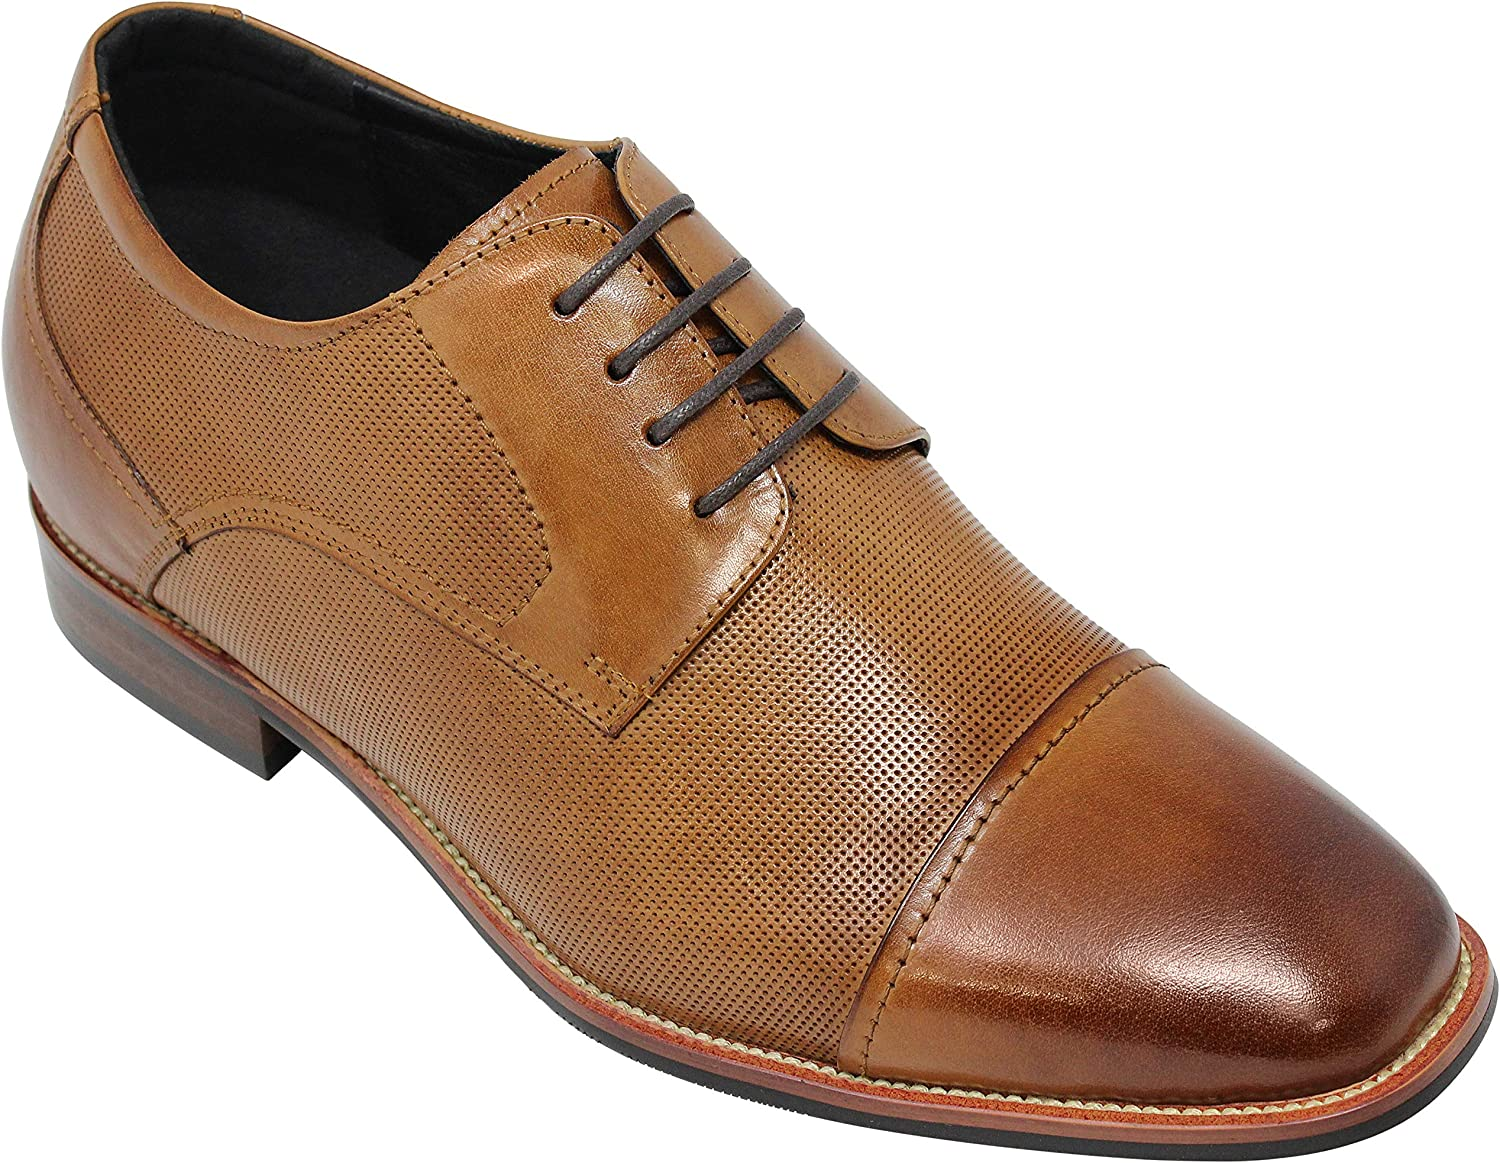 CALTO Men's Invisible Height Increasing Elevator Shoes - Brown Premium Leather Lace-up Formal Oxfords - 3 Inches Taller - Y10650